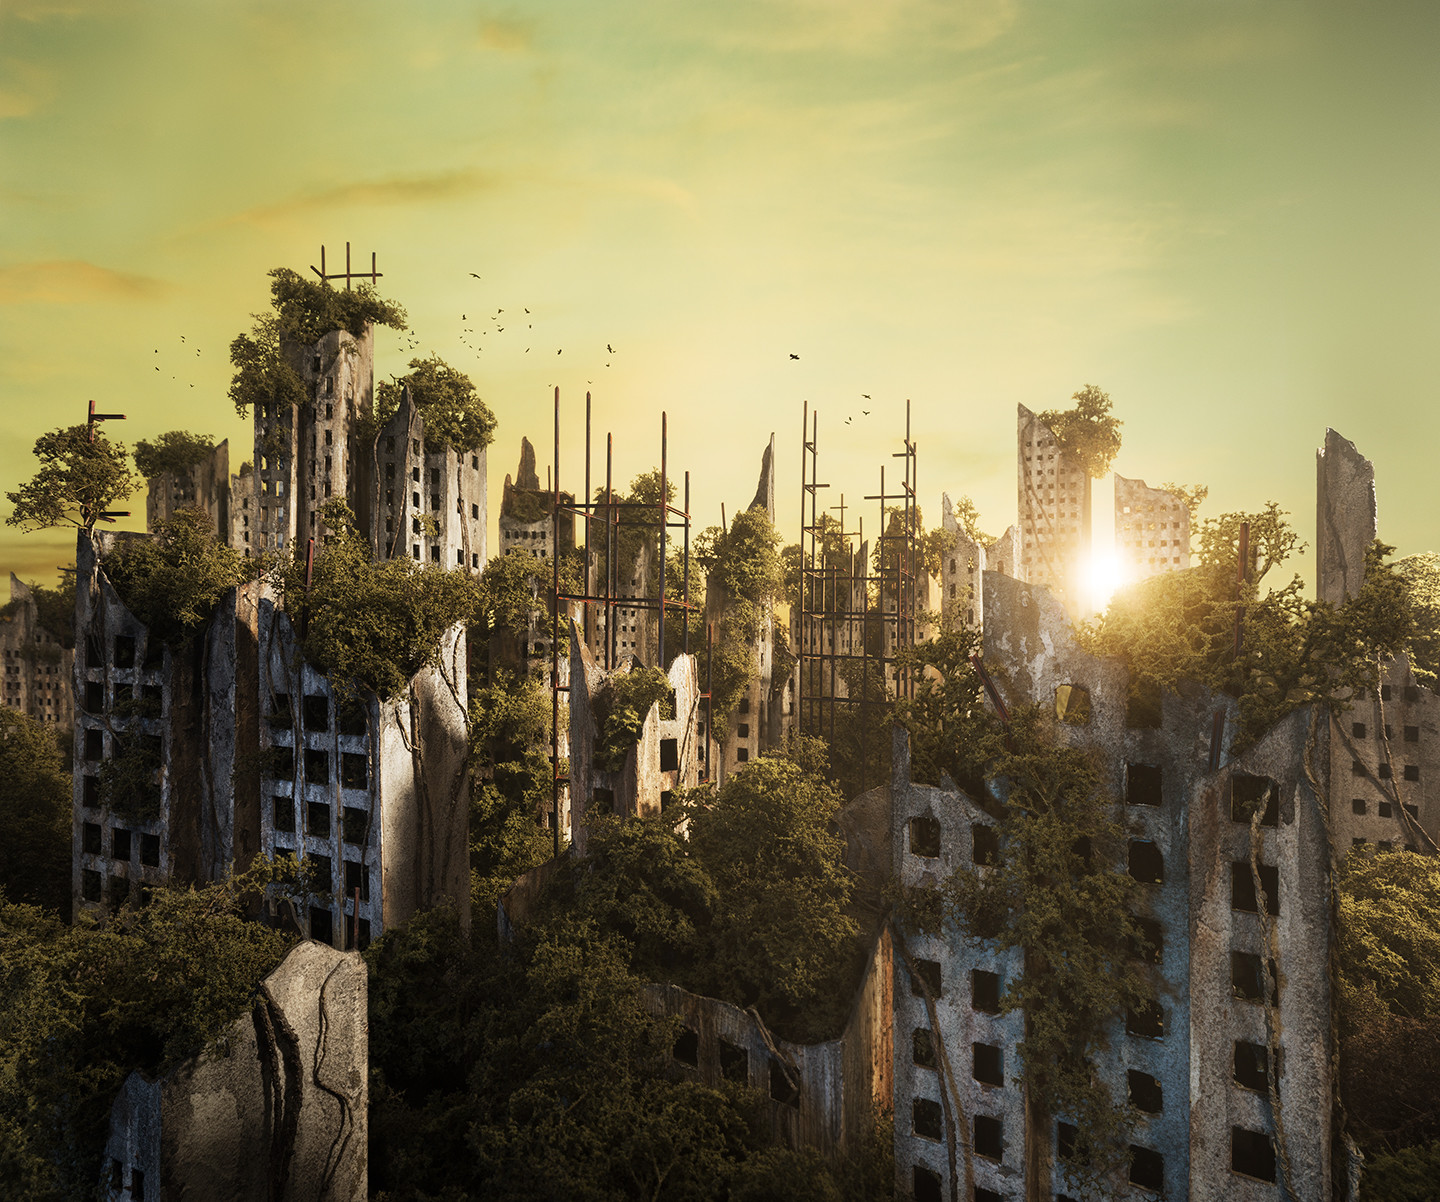 dawn in the abandoned city